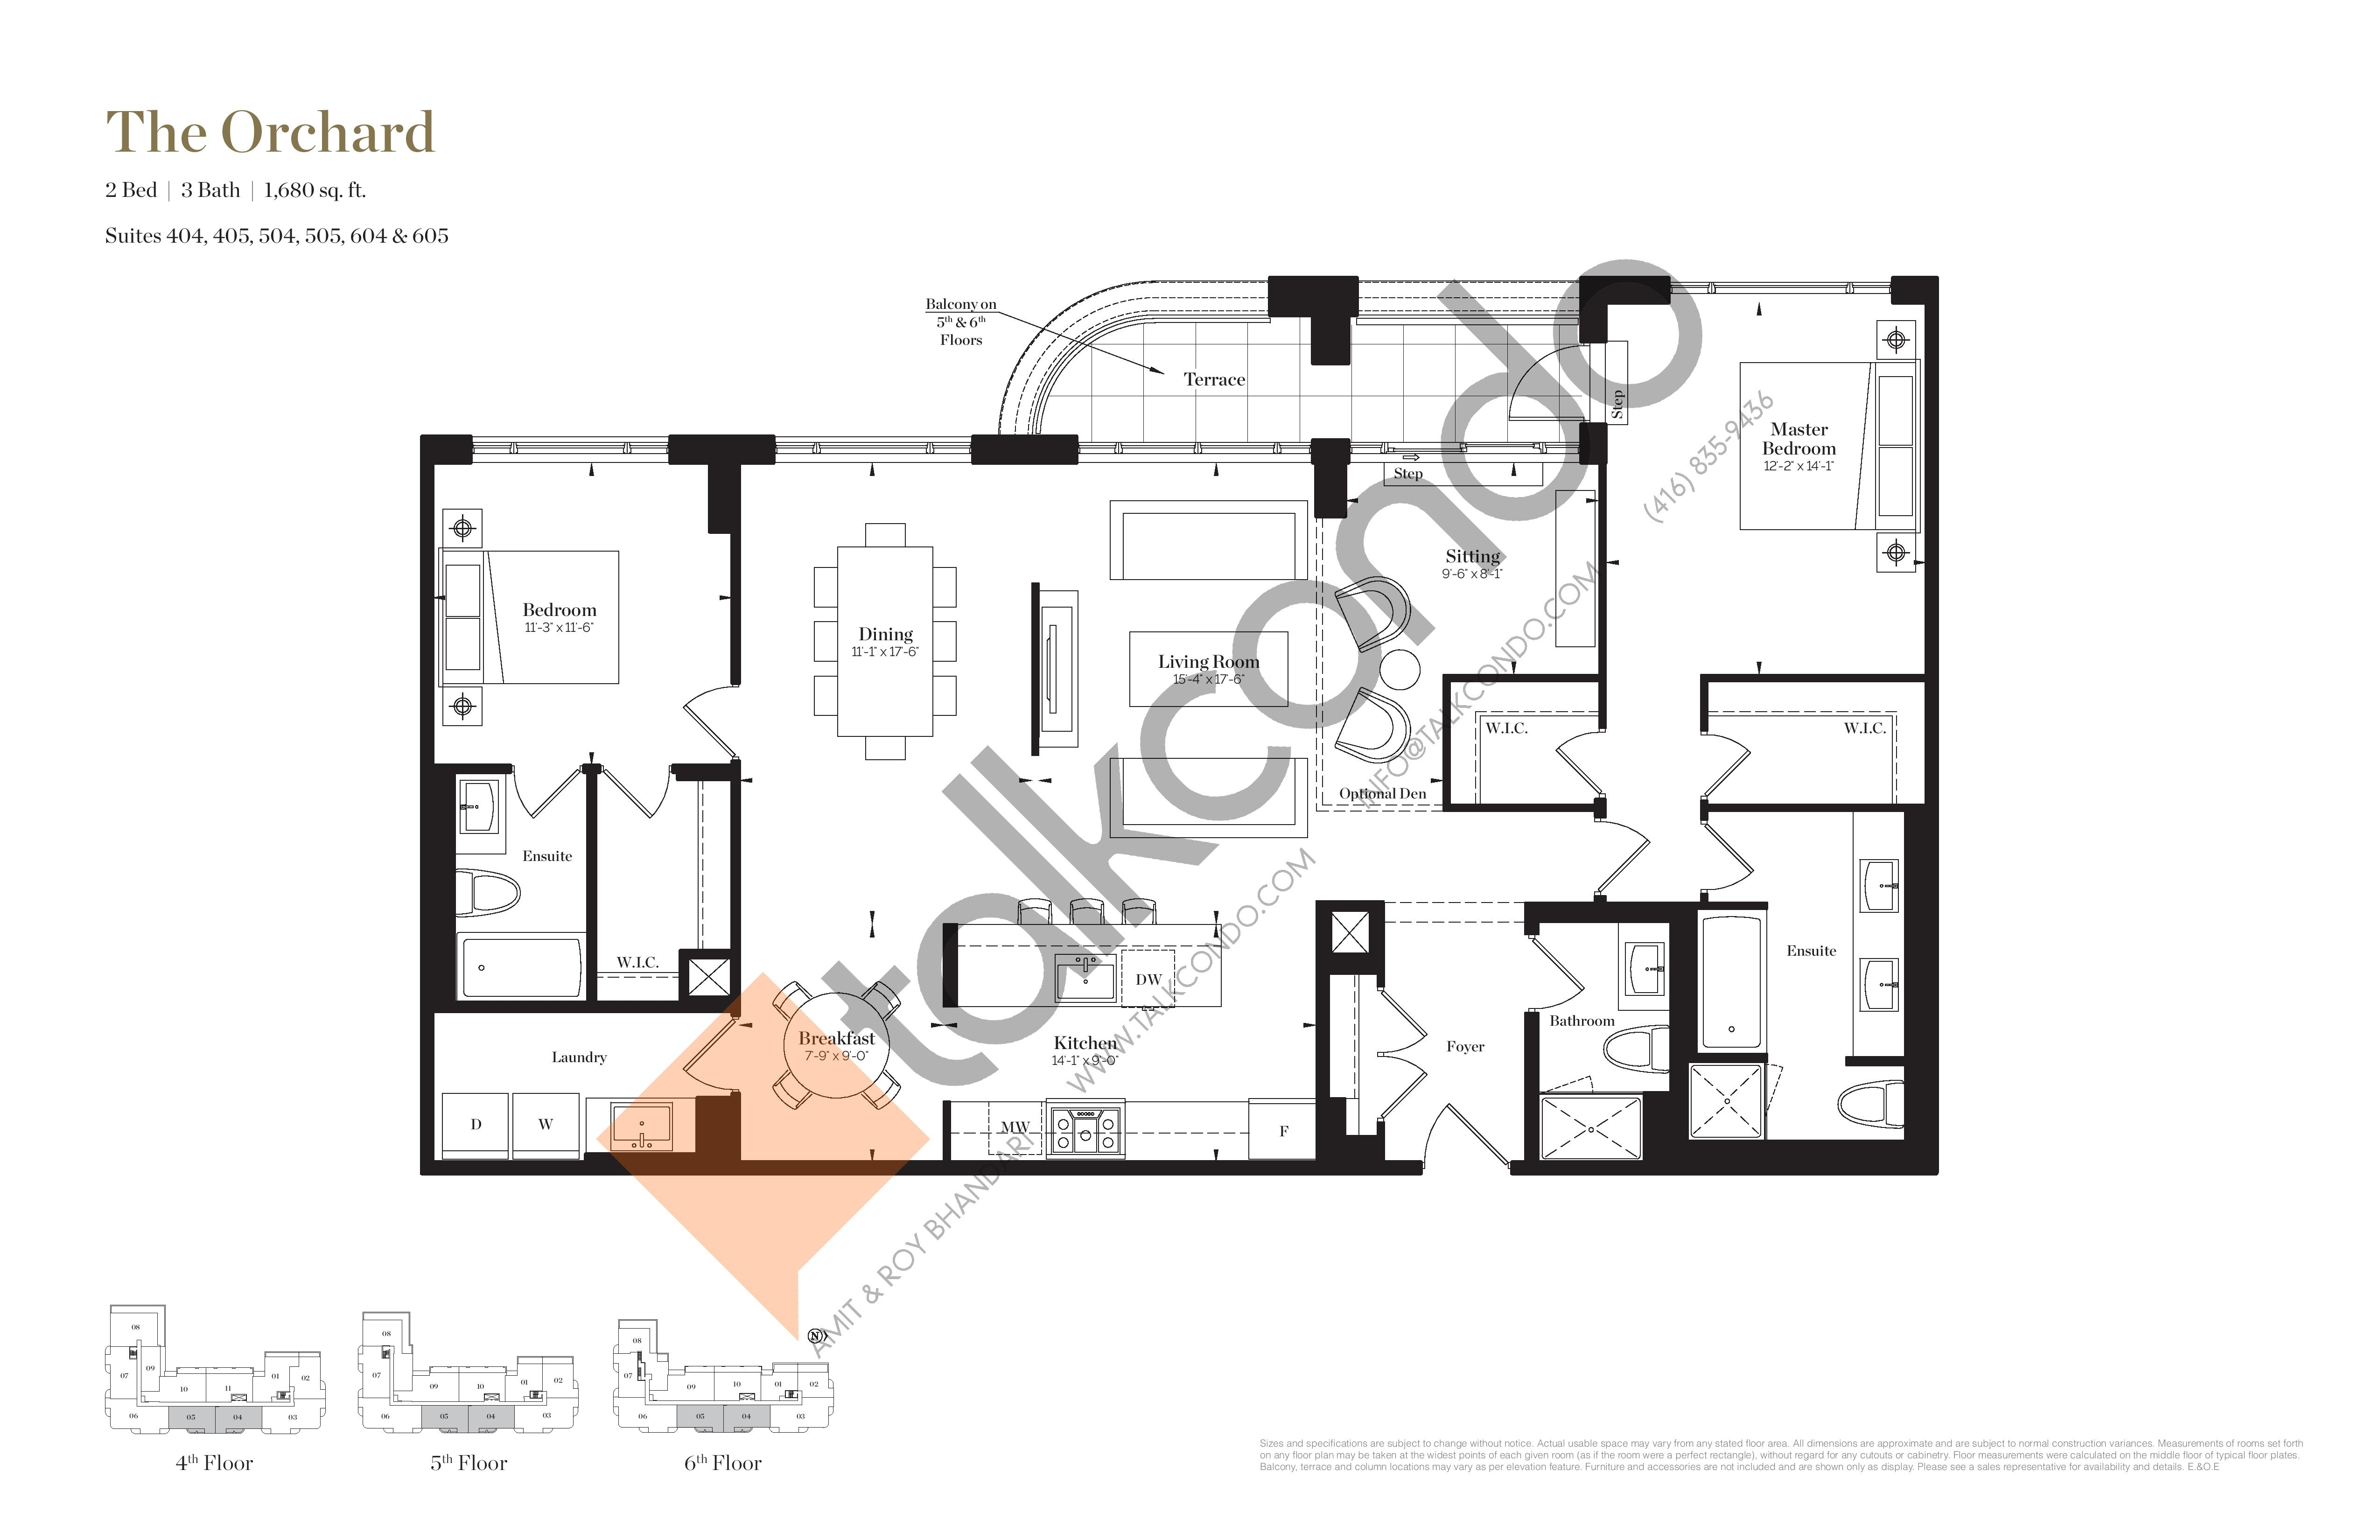 The Orchard Floor Plan at Empire Maven Condos - 1680 sq.ft